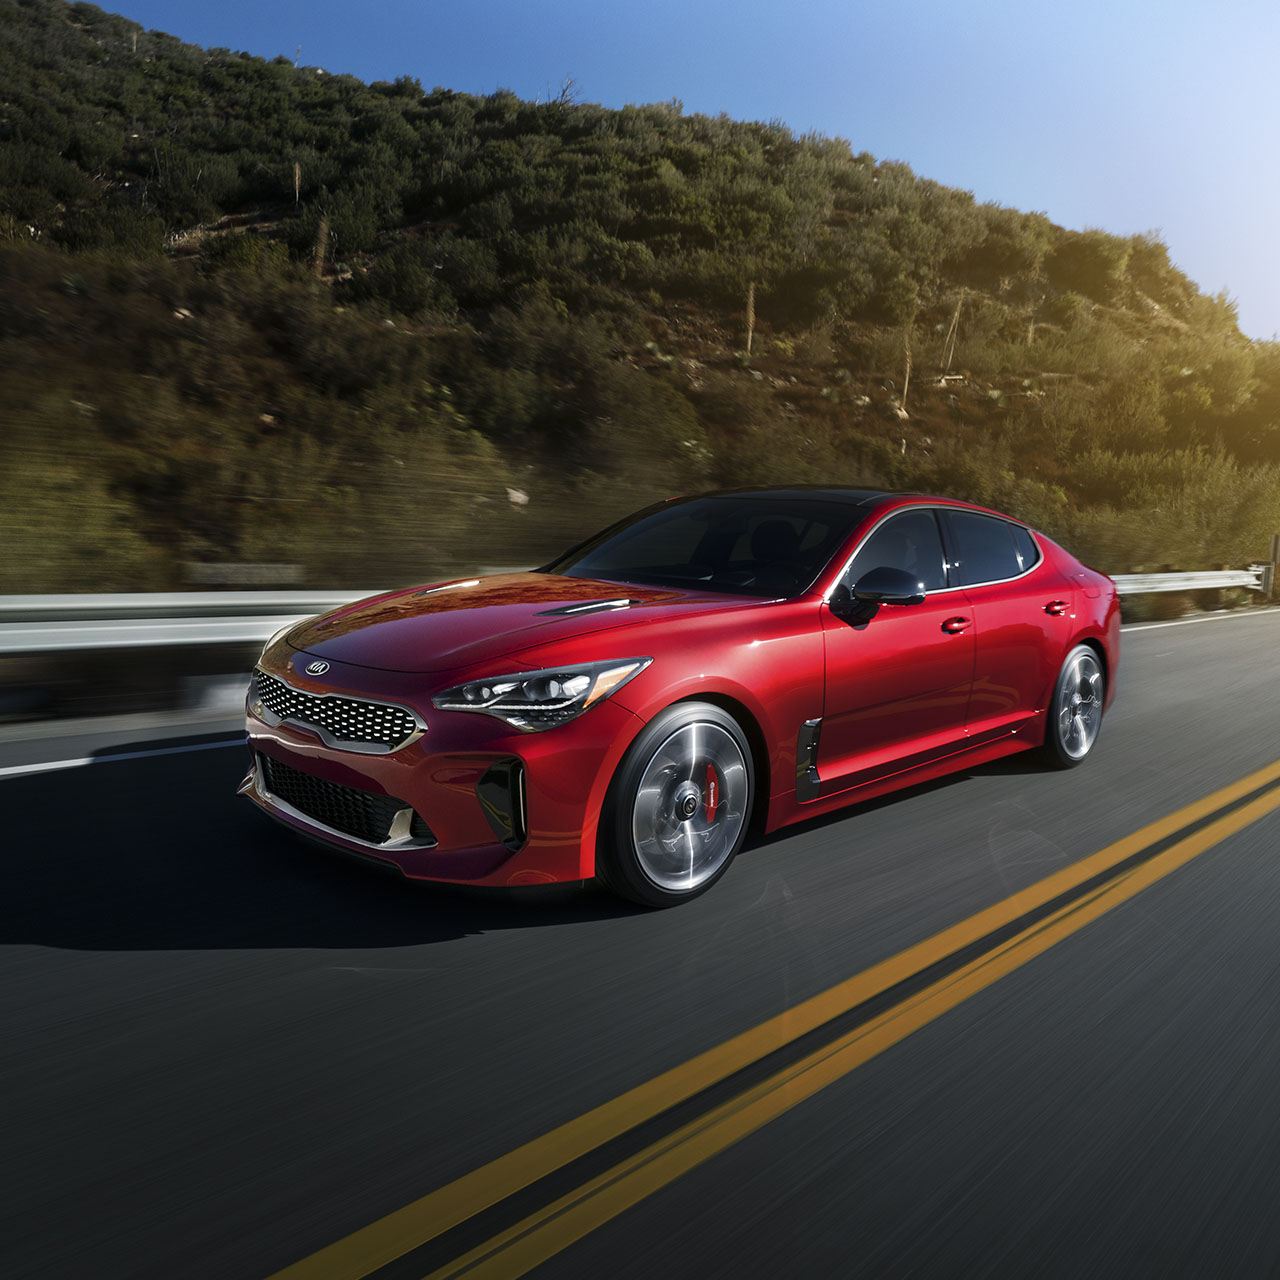 2018 Kia Stinger for Sale in North Olmsted, OH